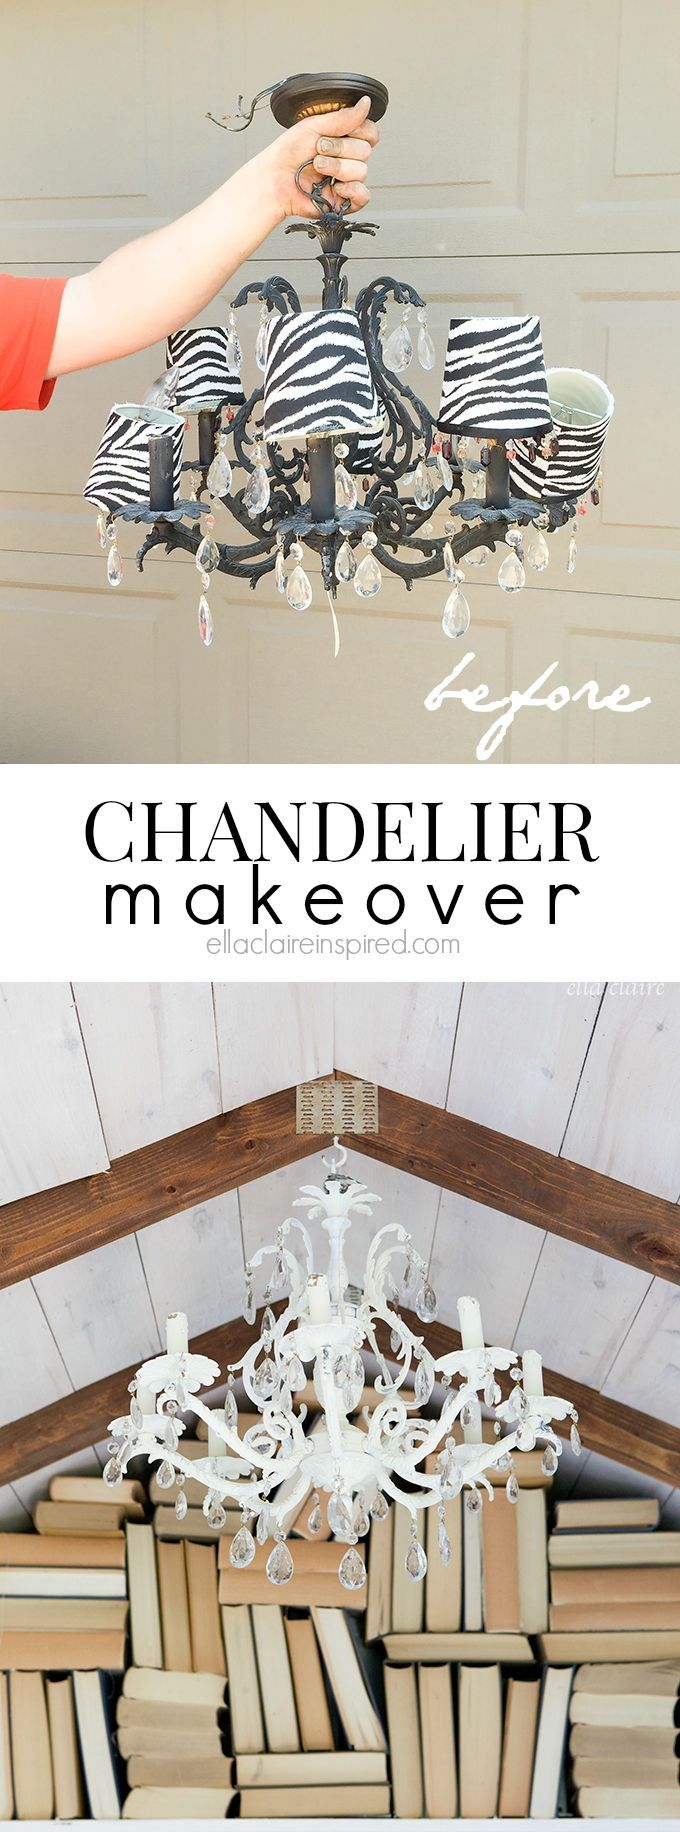 131 best lighting images on pinterest craft ideas ball lights and diy chandelier makeover chandelier makeoverdiy chandelierantique chandelierchandeliersgirls bedroombig girl bedroomscottage styleeasy diylight fixtures arubaitofo Gallery